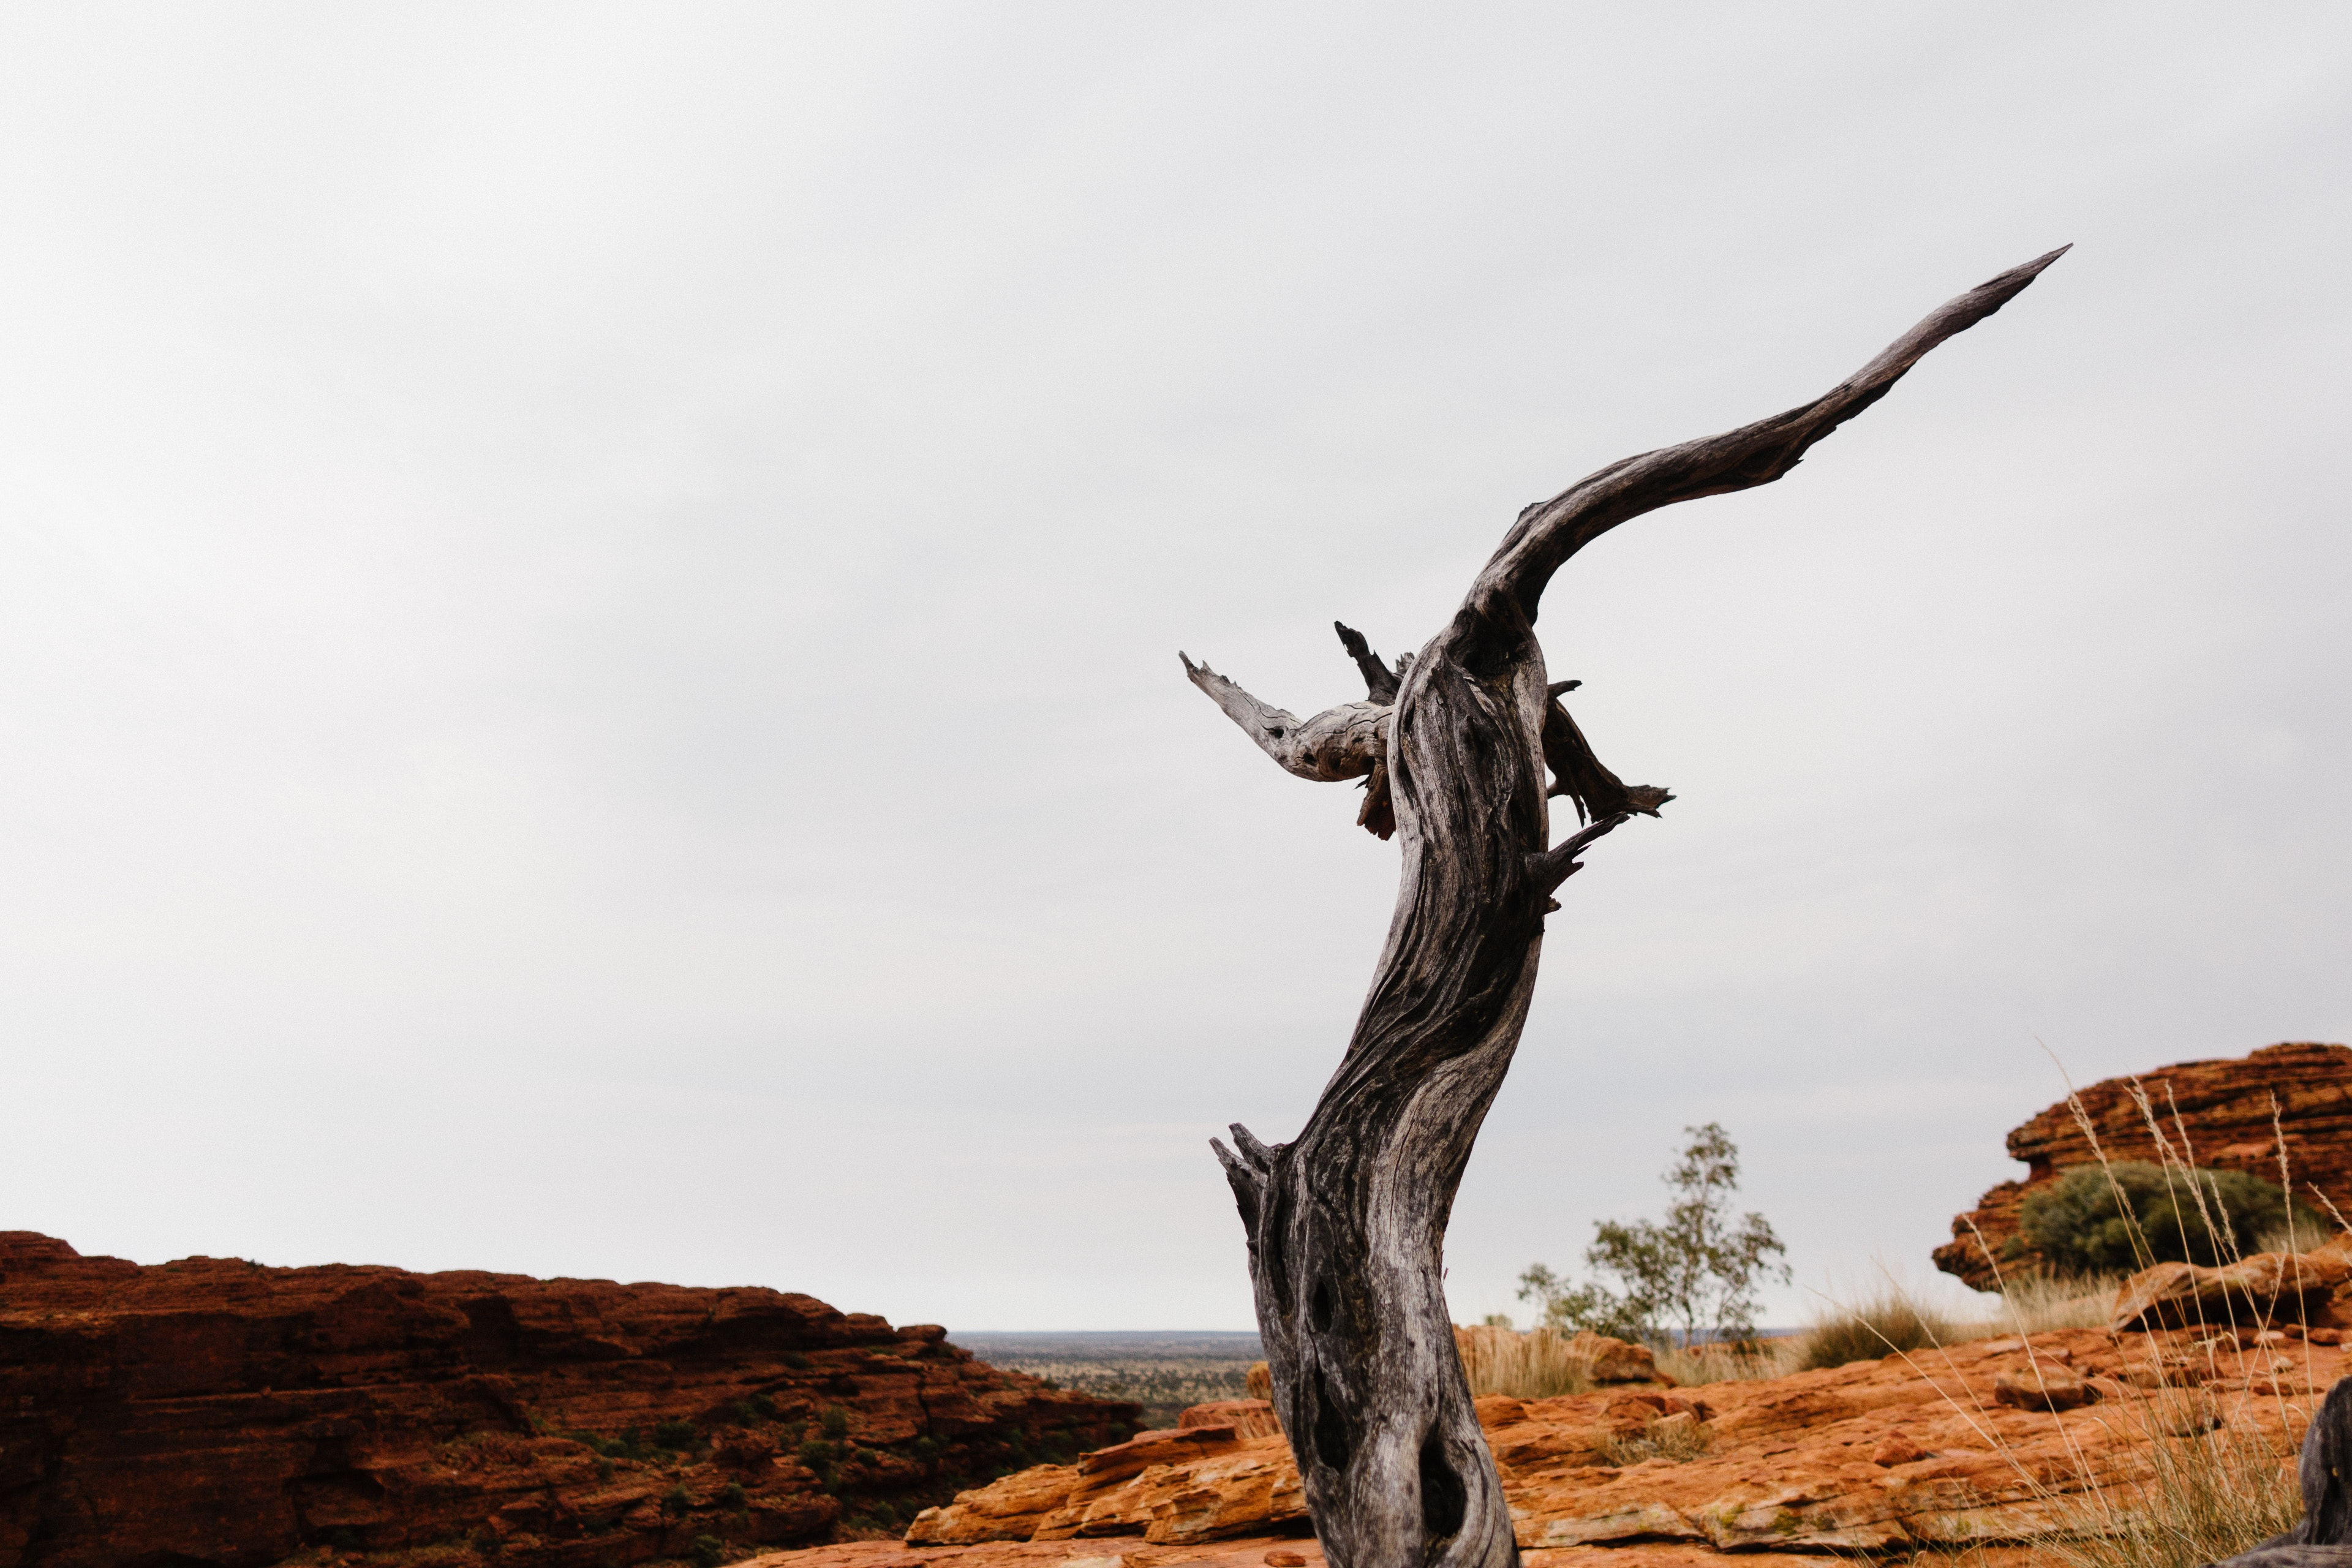 Dead tree at Kings Canyon